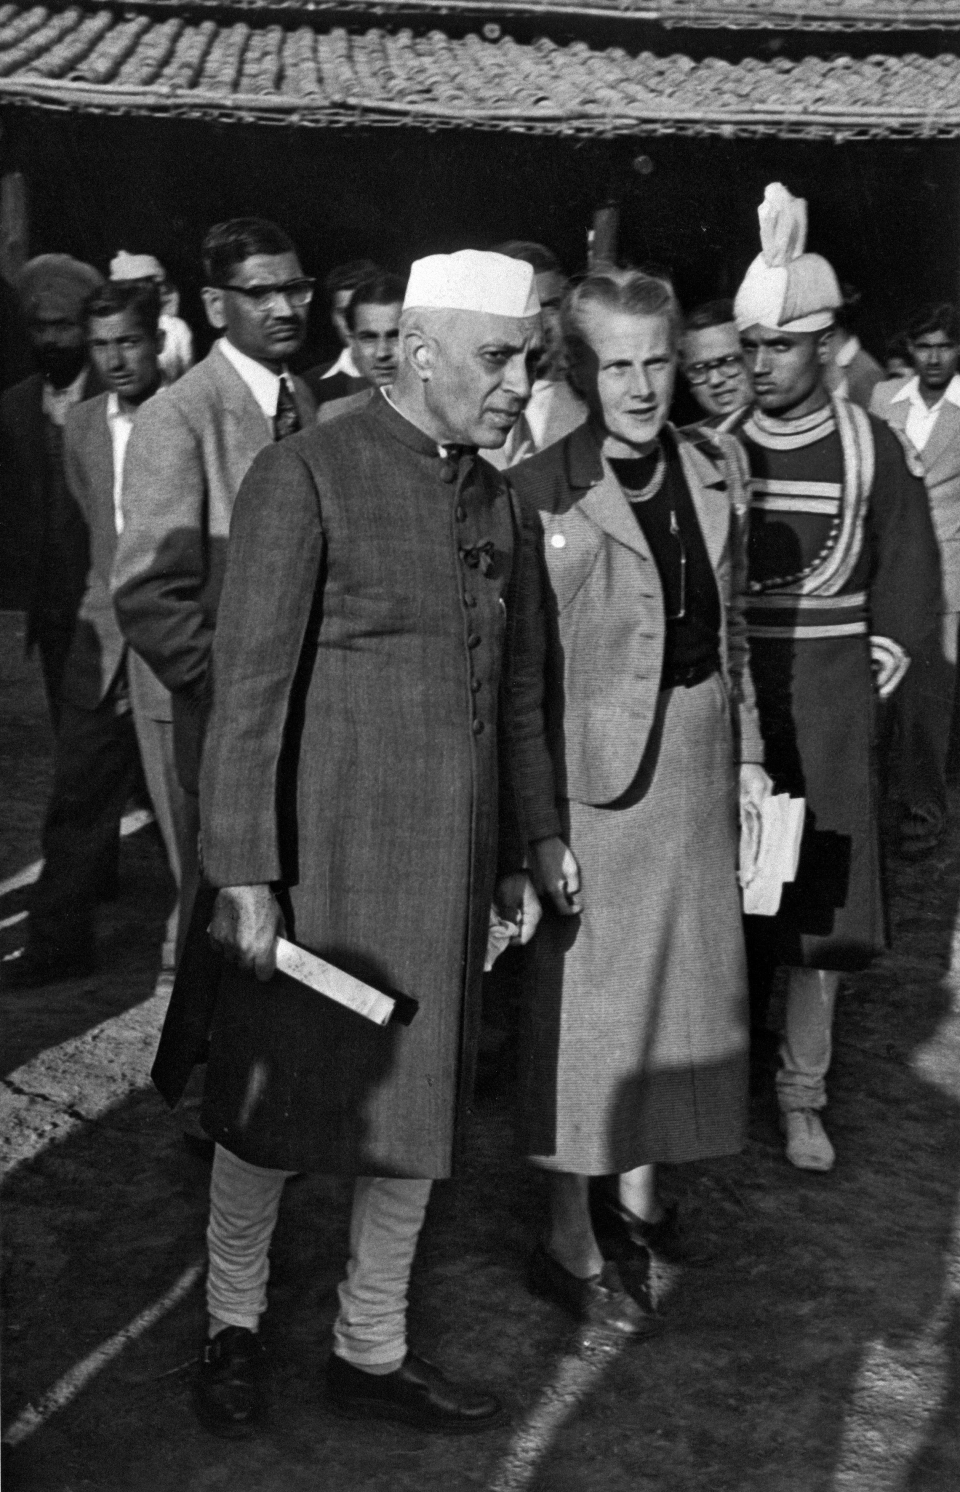 "Seminar and Exhibition on Low-Cost Housing and Community: H.E. Mr. Jawaharlal Nehru, Prime Minister of India as he visited the ""model village"", with U.N. technical assistance expert, Miss Jacqueline Tyrwhitt, who directed the Seminar at New Dehli, India"